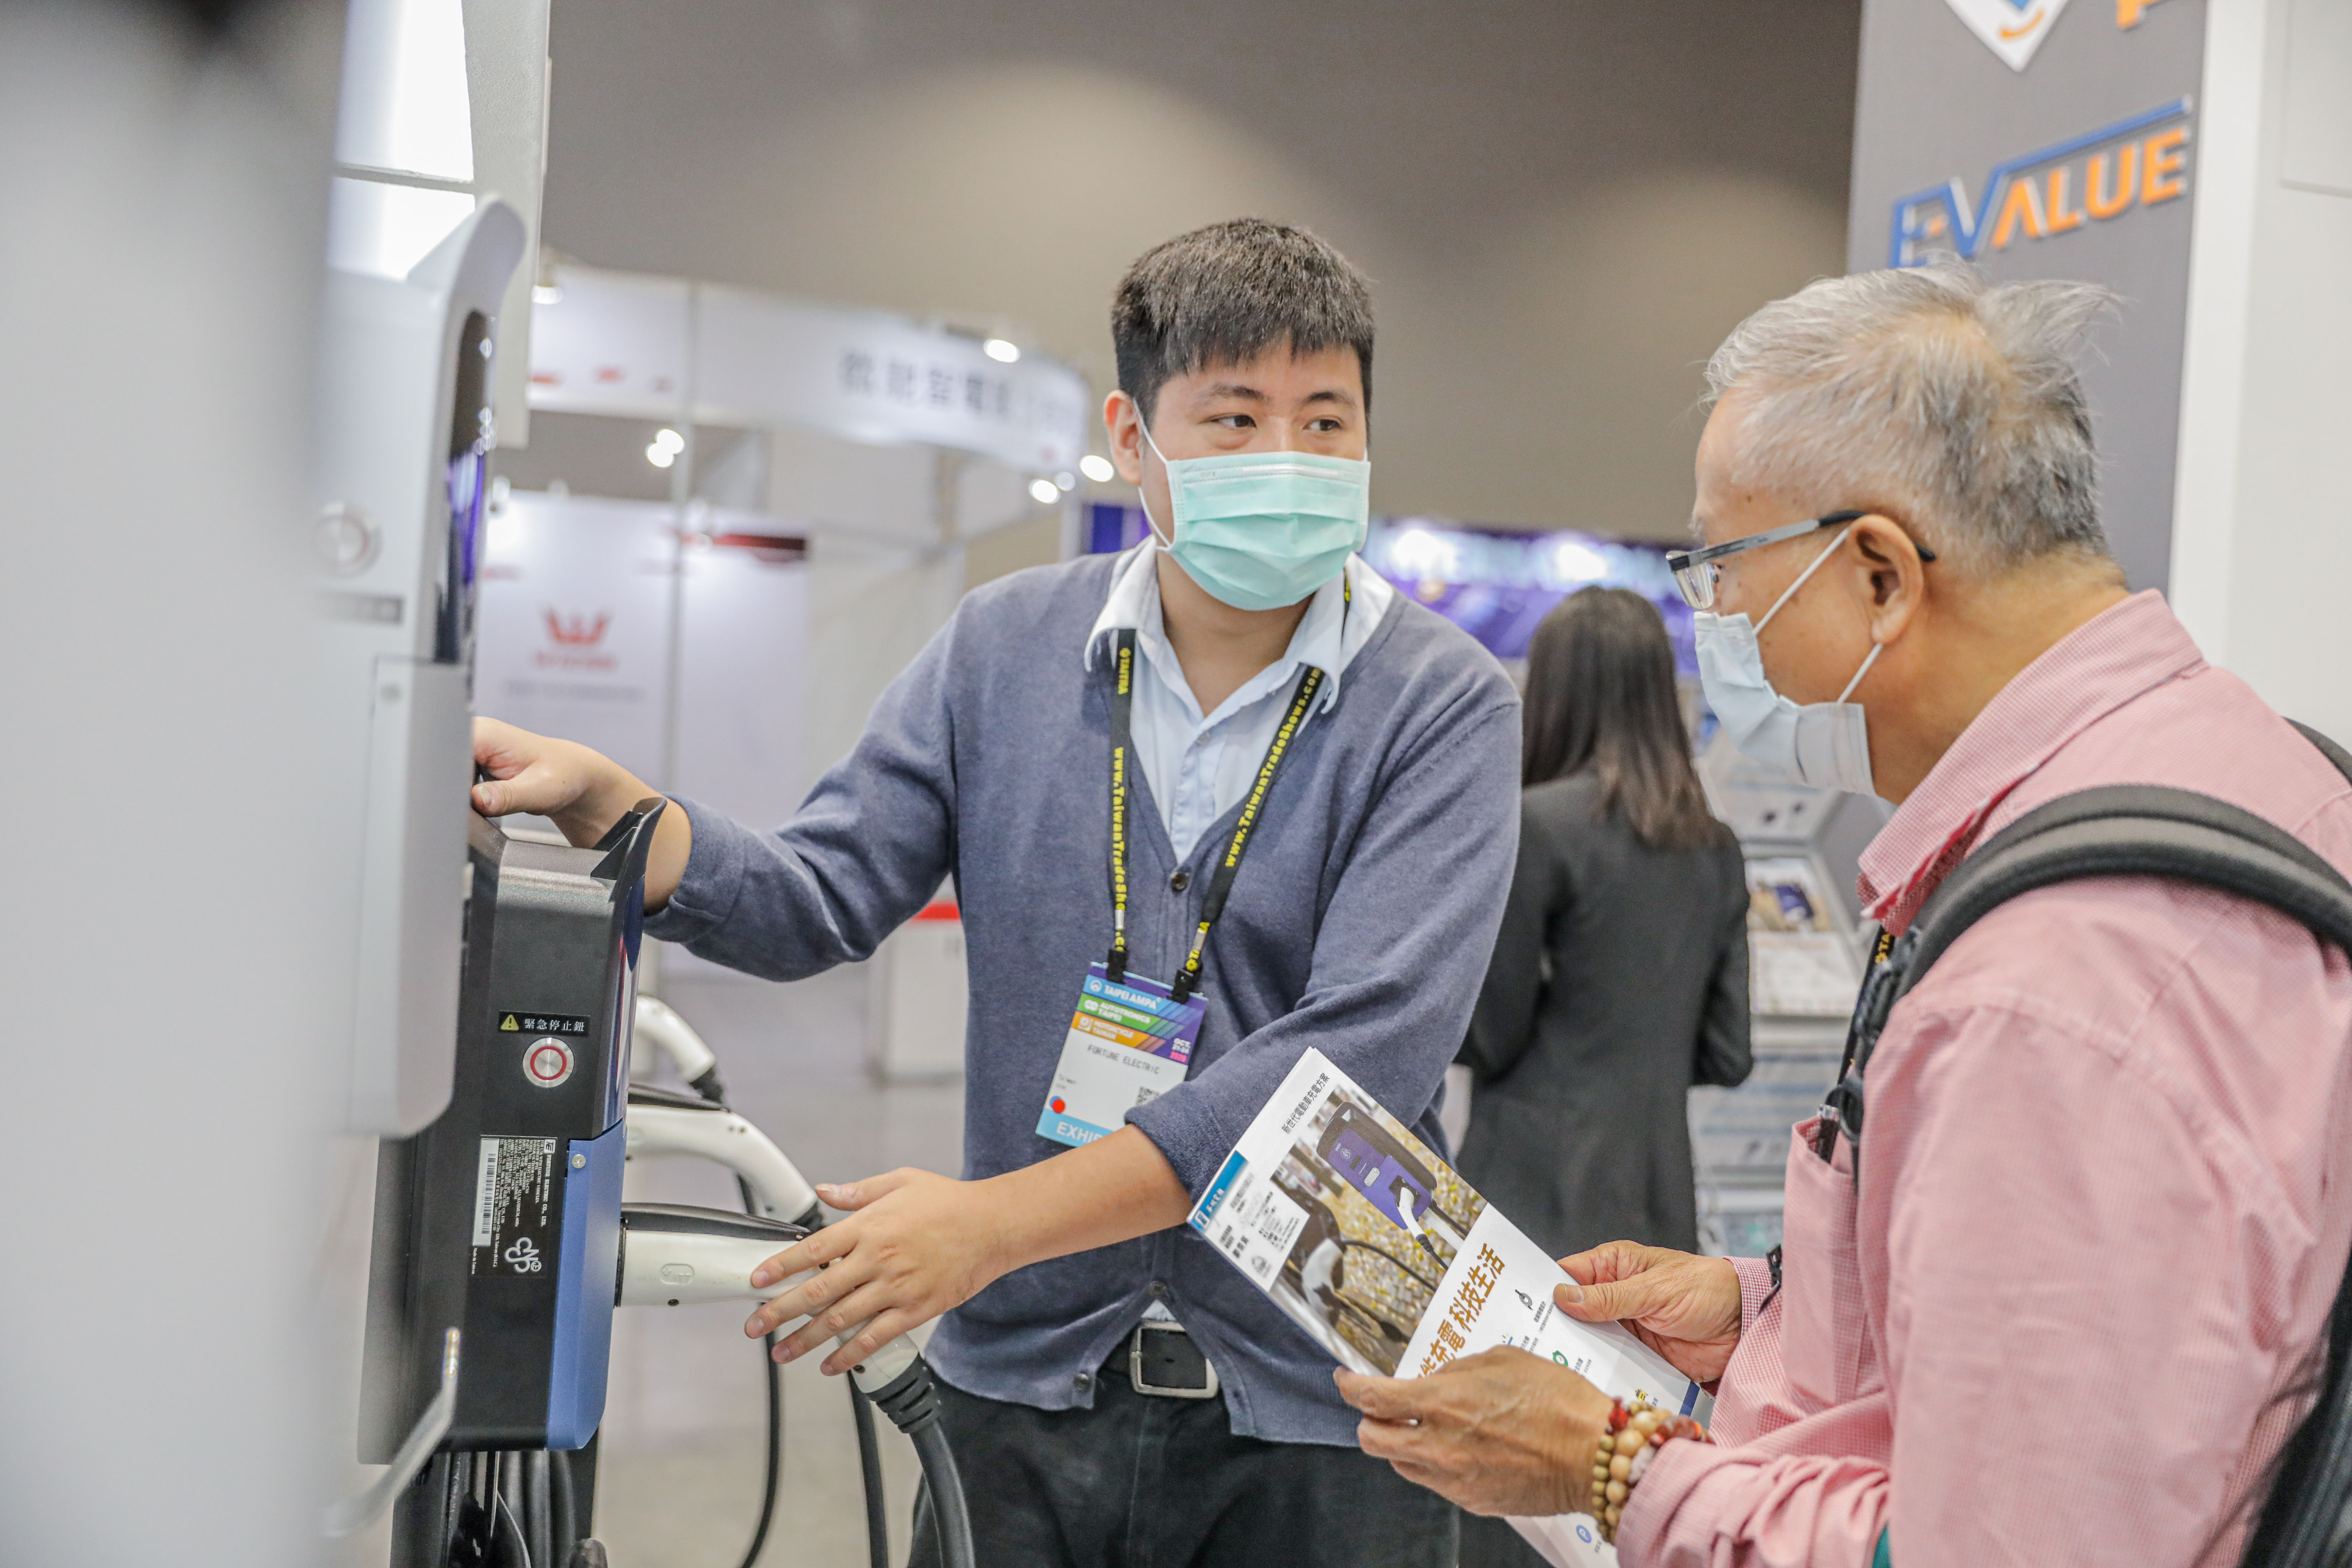 https://storage.googleapis.com/www.taiwantradeshow.com.tw/activity-photo/202010/T-11580299-name.jpg